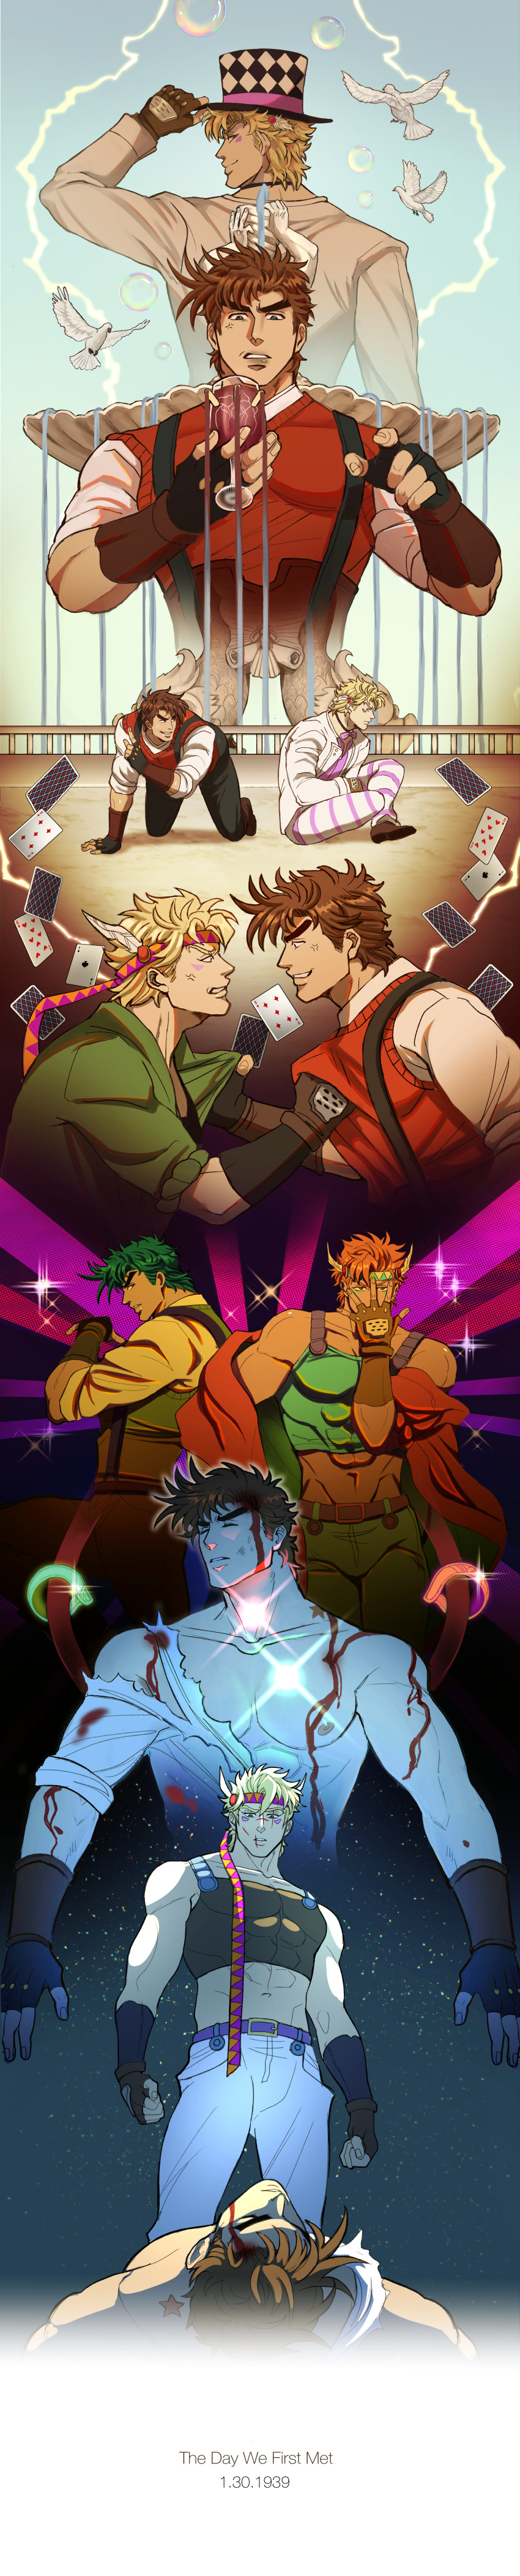 2boys abs absurdres ace_of_spades alcohol all_fours alternate_color anger_vein angry animal argyle_hat arm_up bare_shoulders battle_tendency belt belt_buckle bird birthmark black_gloves black_pants bleeding blonde_hair blood blood_on_arm blood_on_chest blood_on_face blood_stain bloody_clothes bloody_hair blue_eyes bow bowtie broken brown_footwear brown_gloves brown_hair brown_pants bubble buckle card catneylang chromatic_aberration clenched_hands clenched_teeth closed_eyes closed_mouth clothes_grab collarbone covered_abs covered_mouth crop_top cup cuts diffraction_spikes dove drinking_glass electricity english_text eye_contact eyebrows facial_mark feathers fingerless_gloves fountain from_below from_side furrowed_eyebrows gloves glowing green_eyes green_hair green_jacket green_pants grin hair_feathers hand_on_headwear hand_over_face hat headband highres holding holding_cup huge_filesize incredibly_absurdres index_finger_raised injury jacket jewelry joestar_birthmark jojo_no_kimyou_na_bouken jojo_pose leg_up long_image looking_at_another looking_back looking_down lying male_focus midriff multiple_boys multiple_sources multiple_views muscular muscular_male navel nipples off_shoulder on_back orange_eyes orange_hair orange_jacket pants pectorals pink_neckwear playing_card pose profile purple_belt red_sweater ring robert_eo_speedwagon scratches shirt shoe_soles shoes short_hair sideways_glance sitting sleeveless sleeves_folded_up smile standing stomach striped striped_pants suspenders sweat sweater sweater_vest tall_image teeth thick_eyebrows top_hat torn_clothes torn_shirt triangle_print unconscious wet wet_hair white_jacket white_pants white_shirt wine wine_glass yellow_shirt